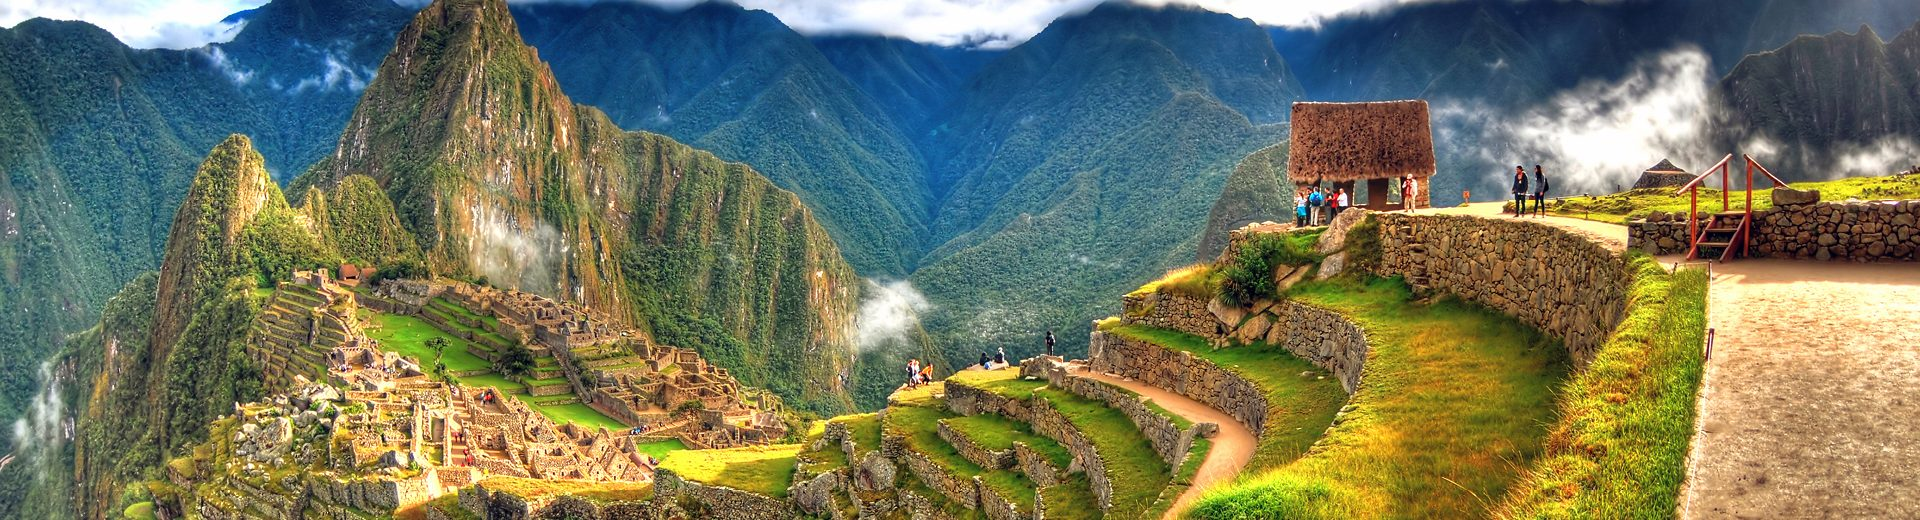 Turismo no Peru: Destinos surpreendentes